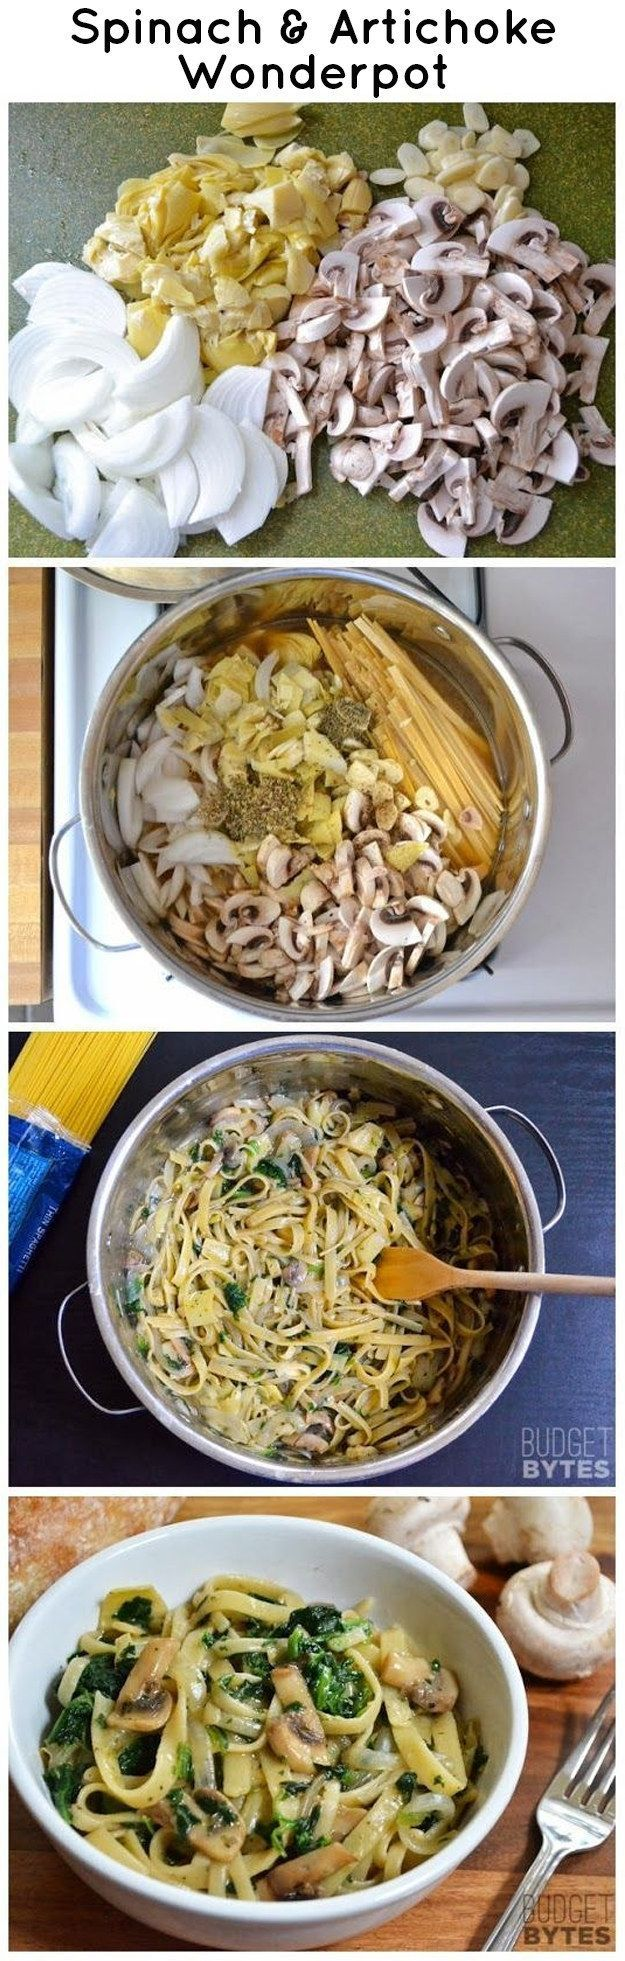 Spinach & Artichoke Wonderpot - Simple One-Pot Pastas